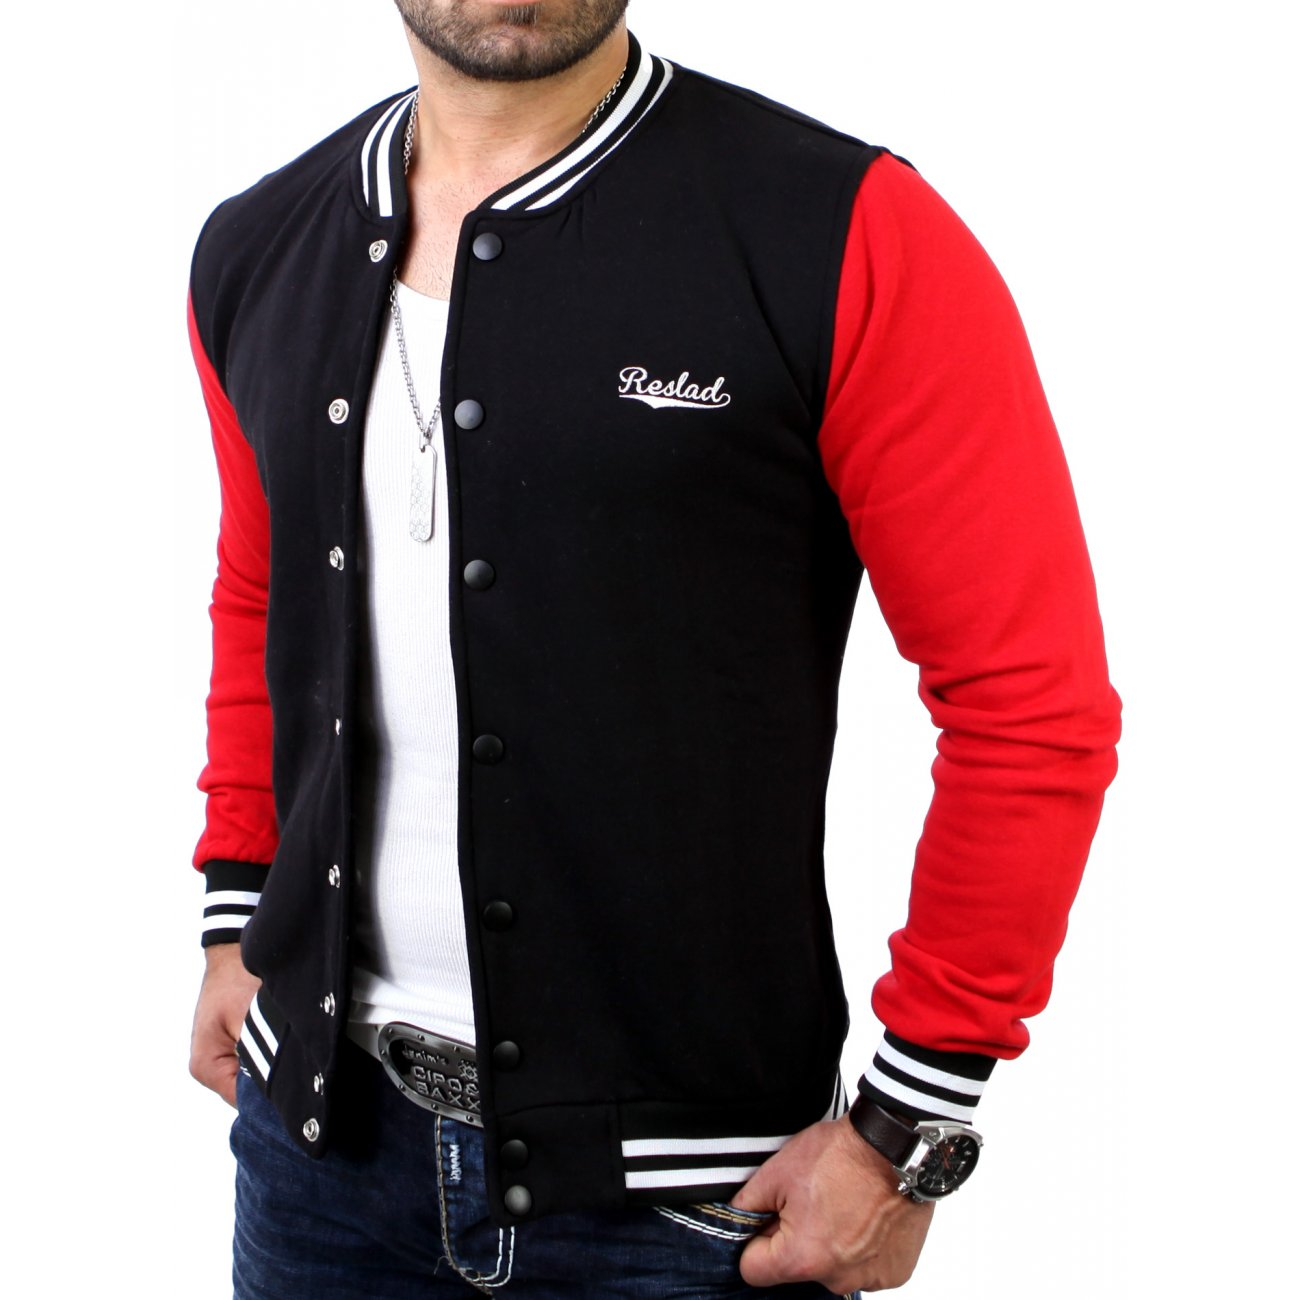 College jacke herren authentic reslad college jacken online - Rote college jacke ...